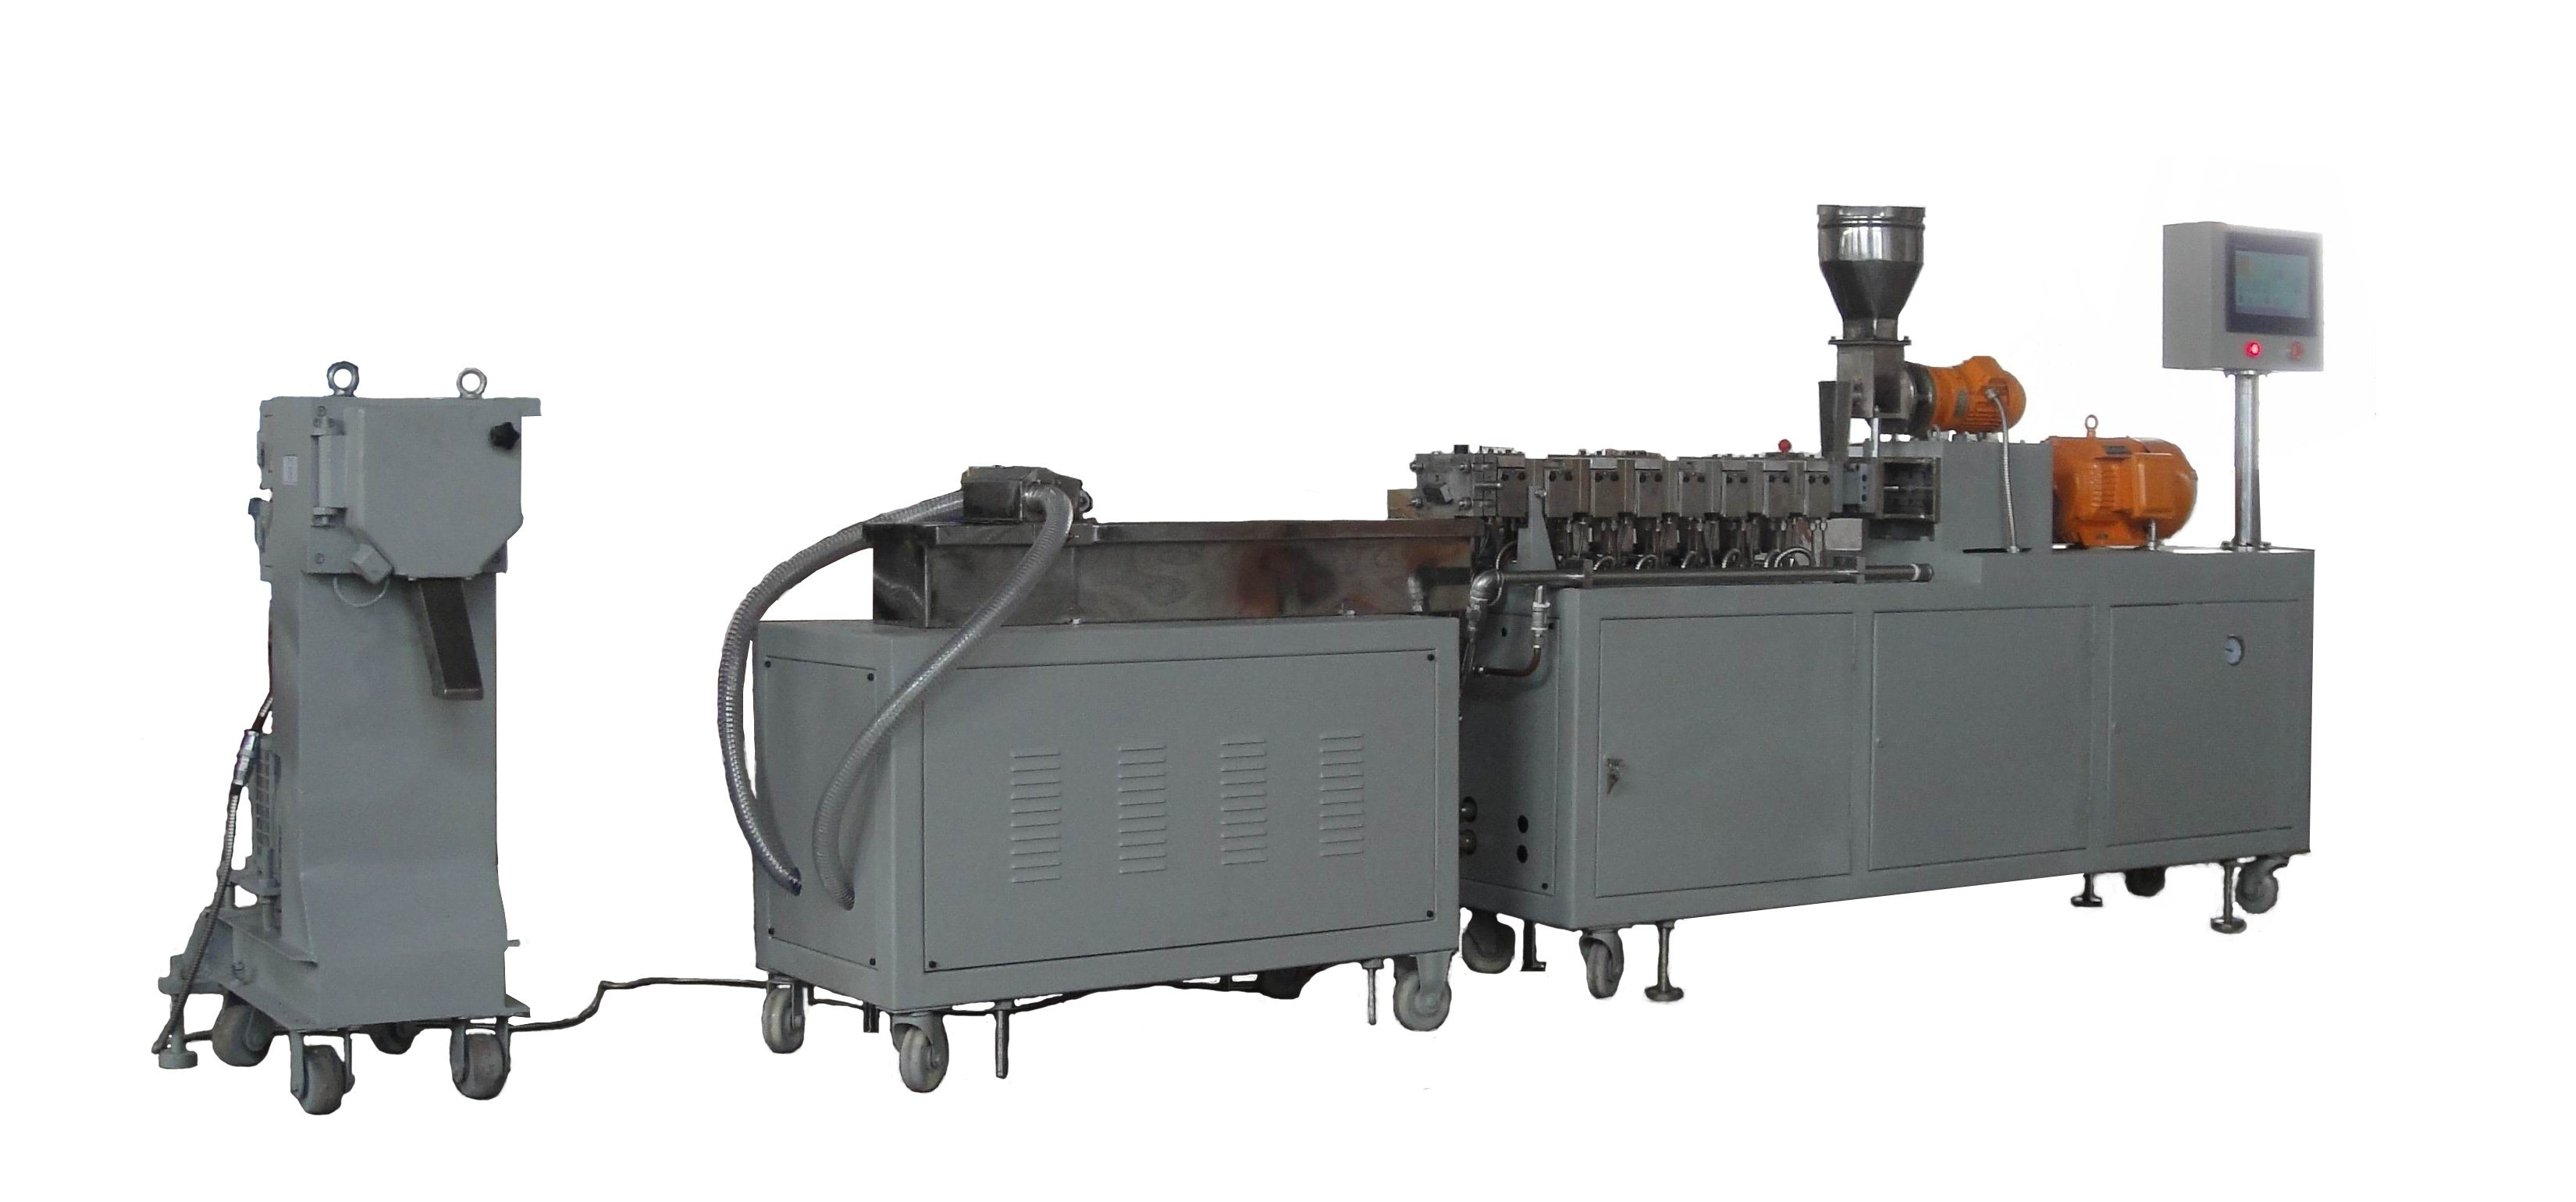 Twin-Screw Extruder Co-Rotating, High Output Capacity, 500-600rpm Screw Speed, Plastic Extruder